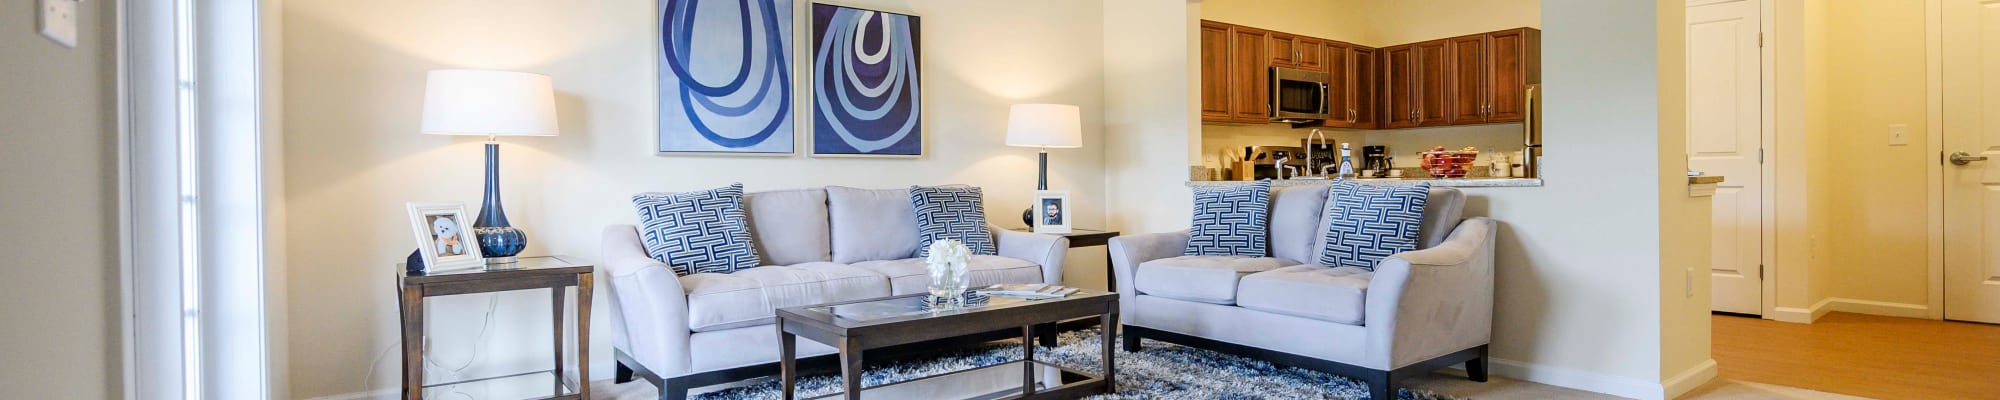 Floor Plans at Harmony at Victory Station in Murfreesboro, Tennessee